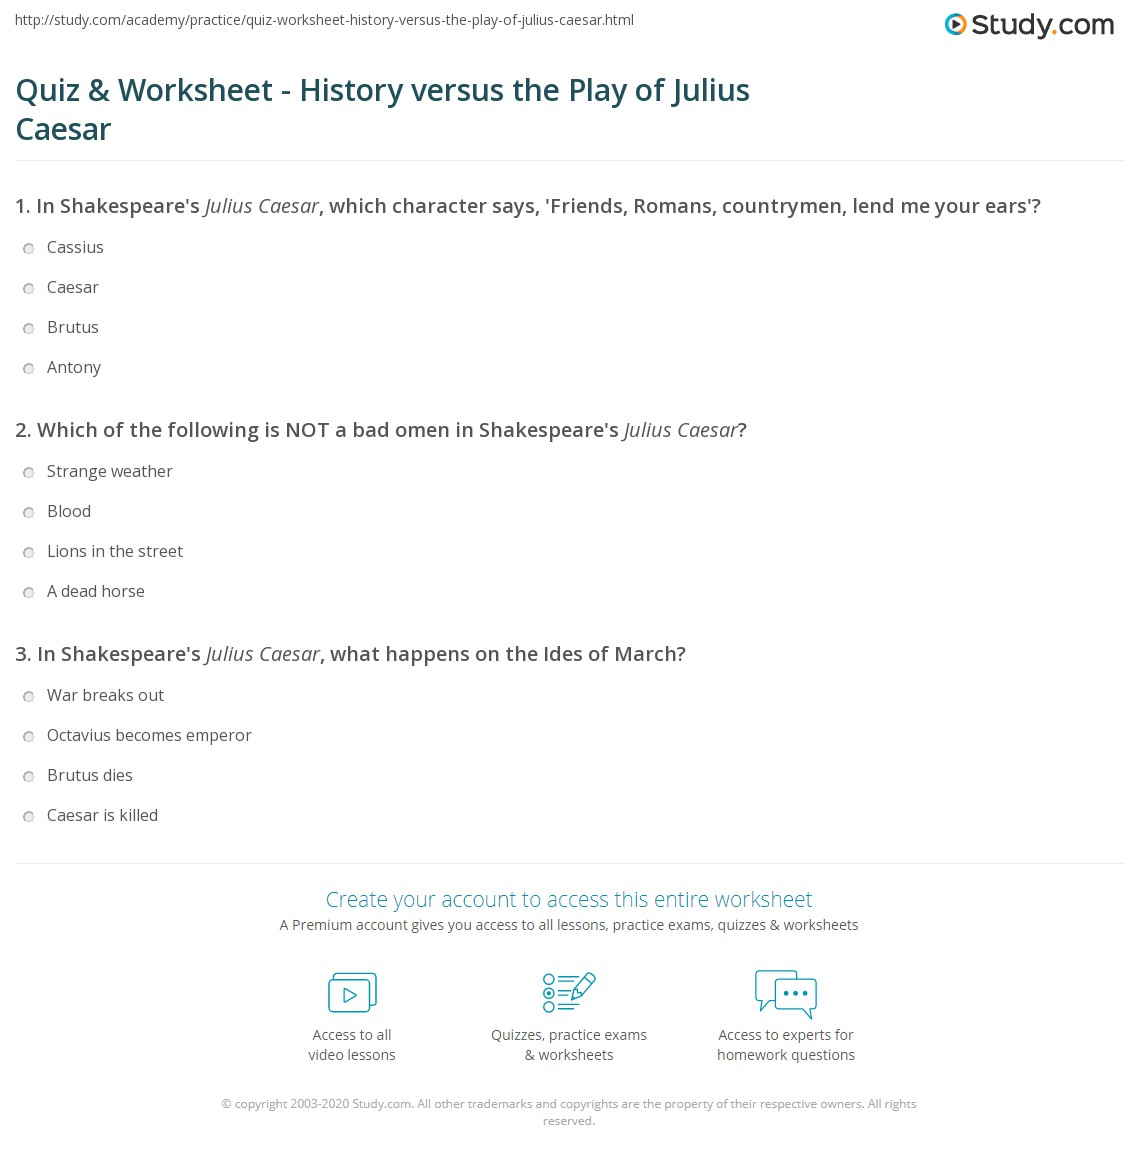 worksheet Julius Caesar Worksheets quiz worksheet history versus the play of julius caesar print shakespeares vs worksheet